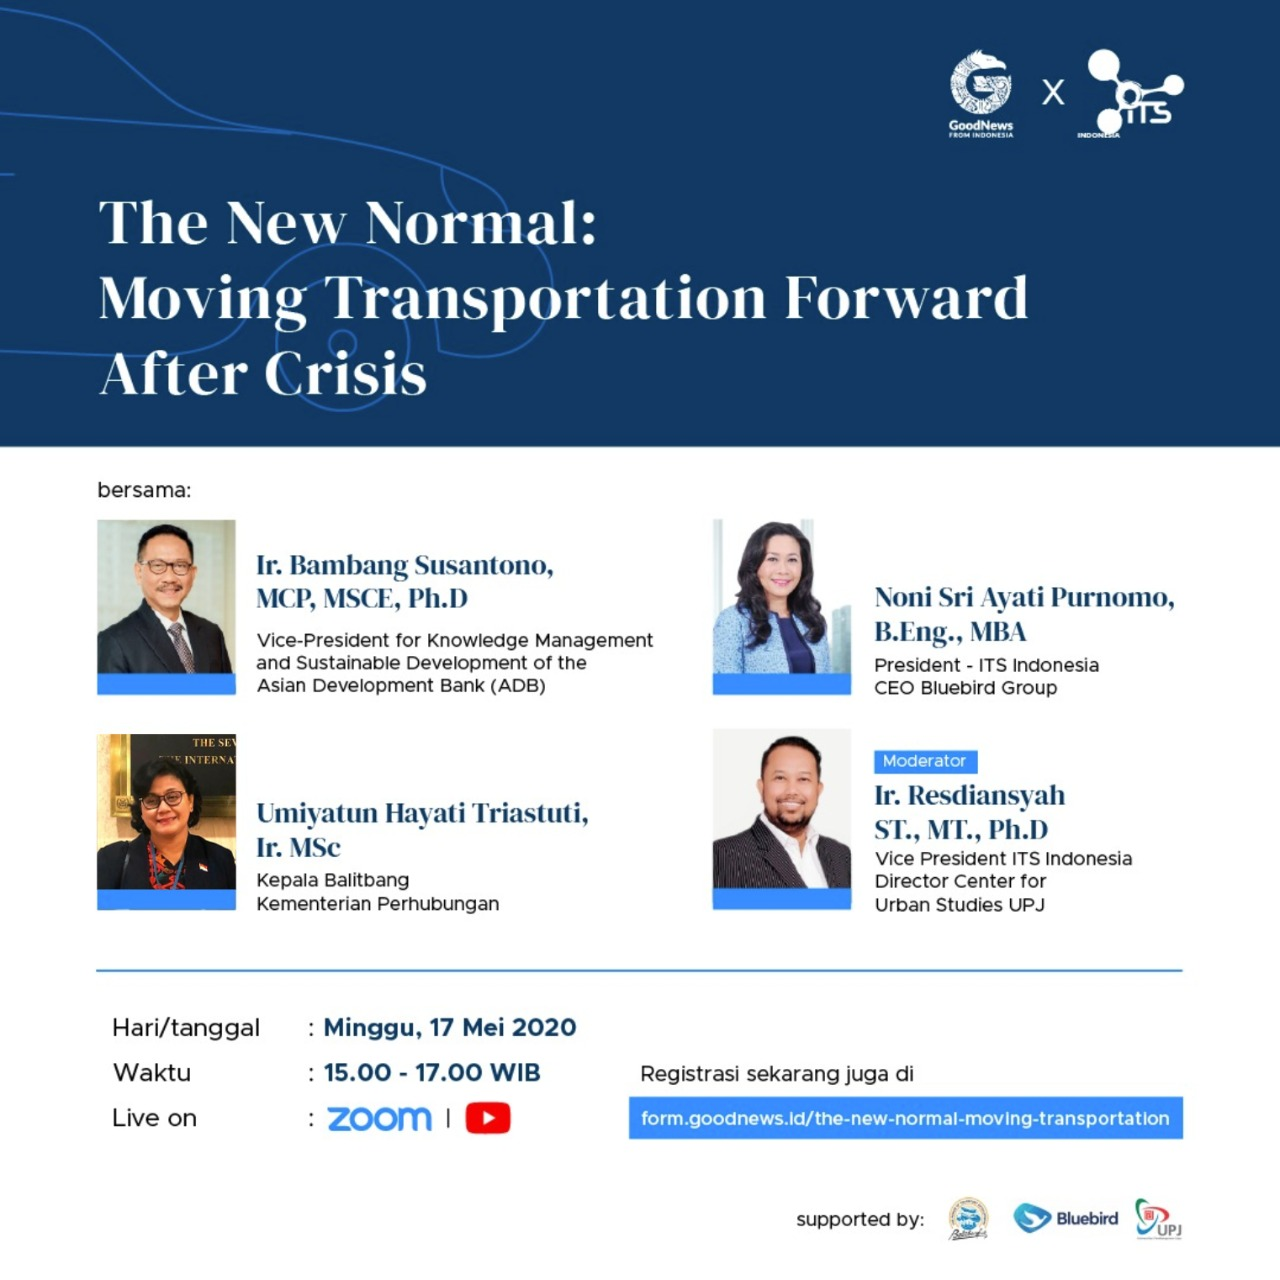 The New Normal: Moving Transportation Forward After Crisis